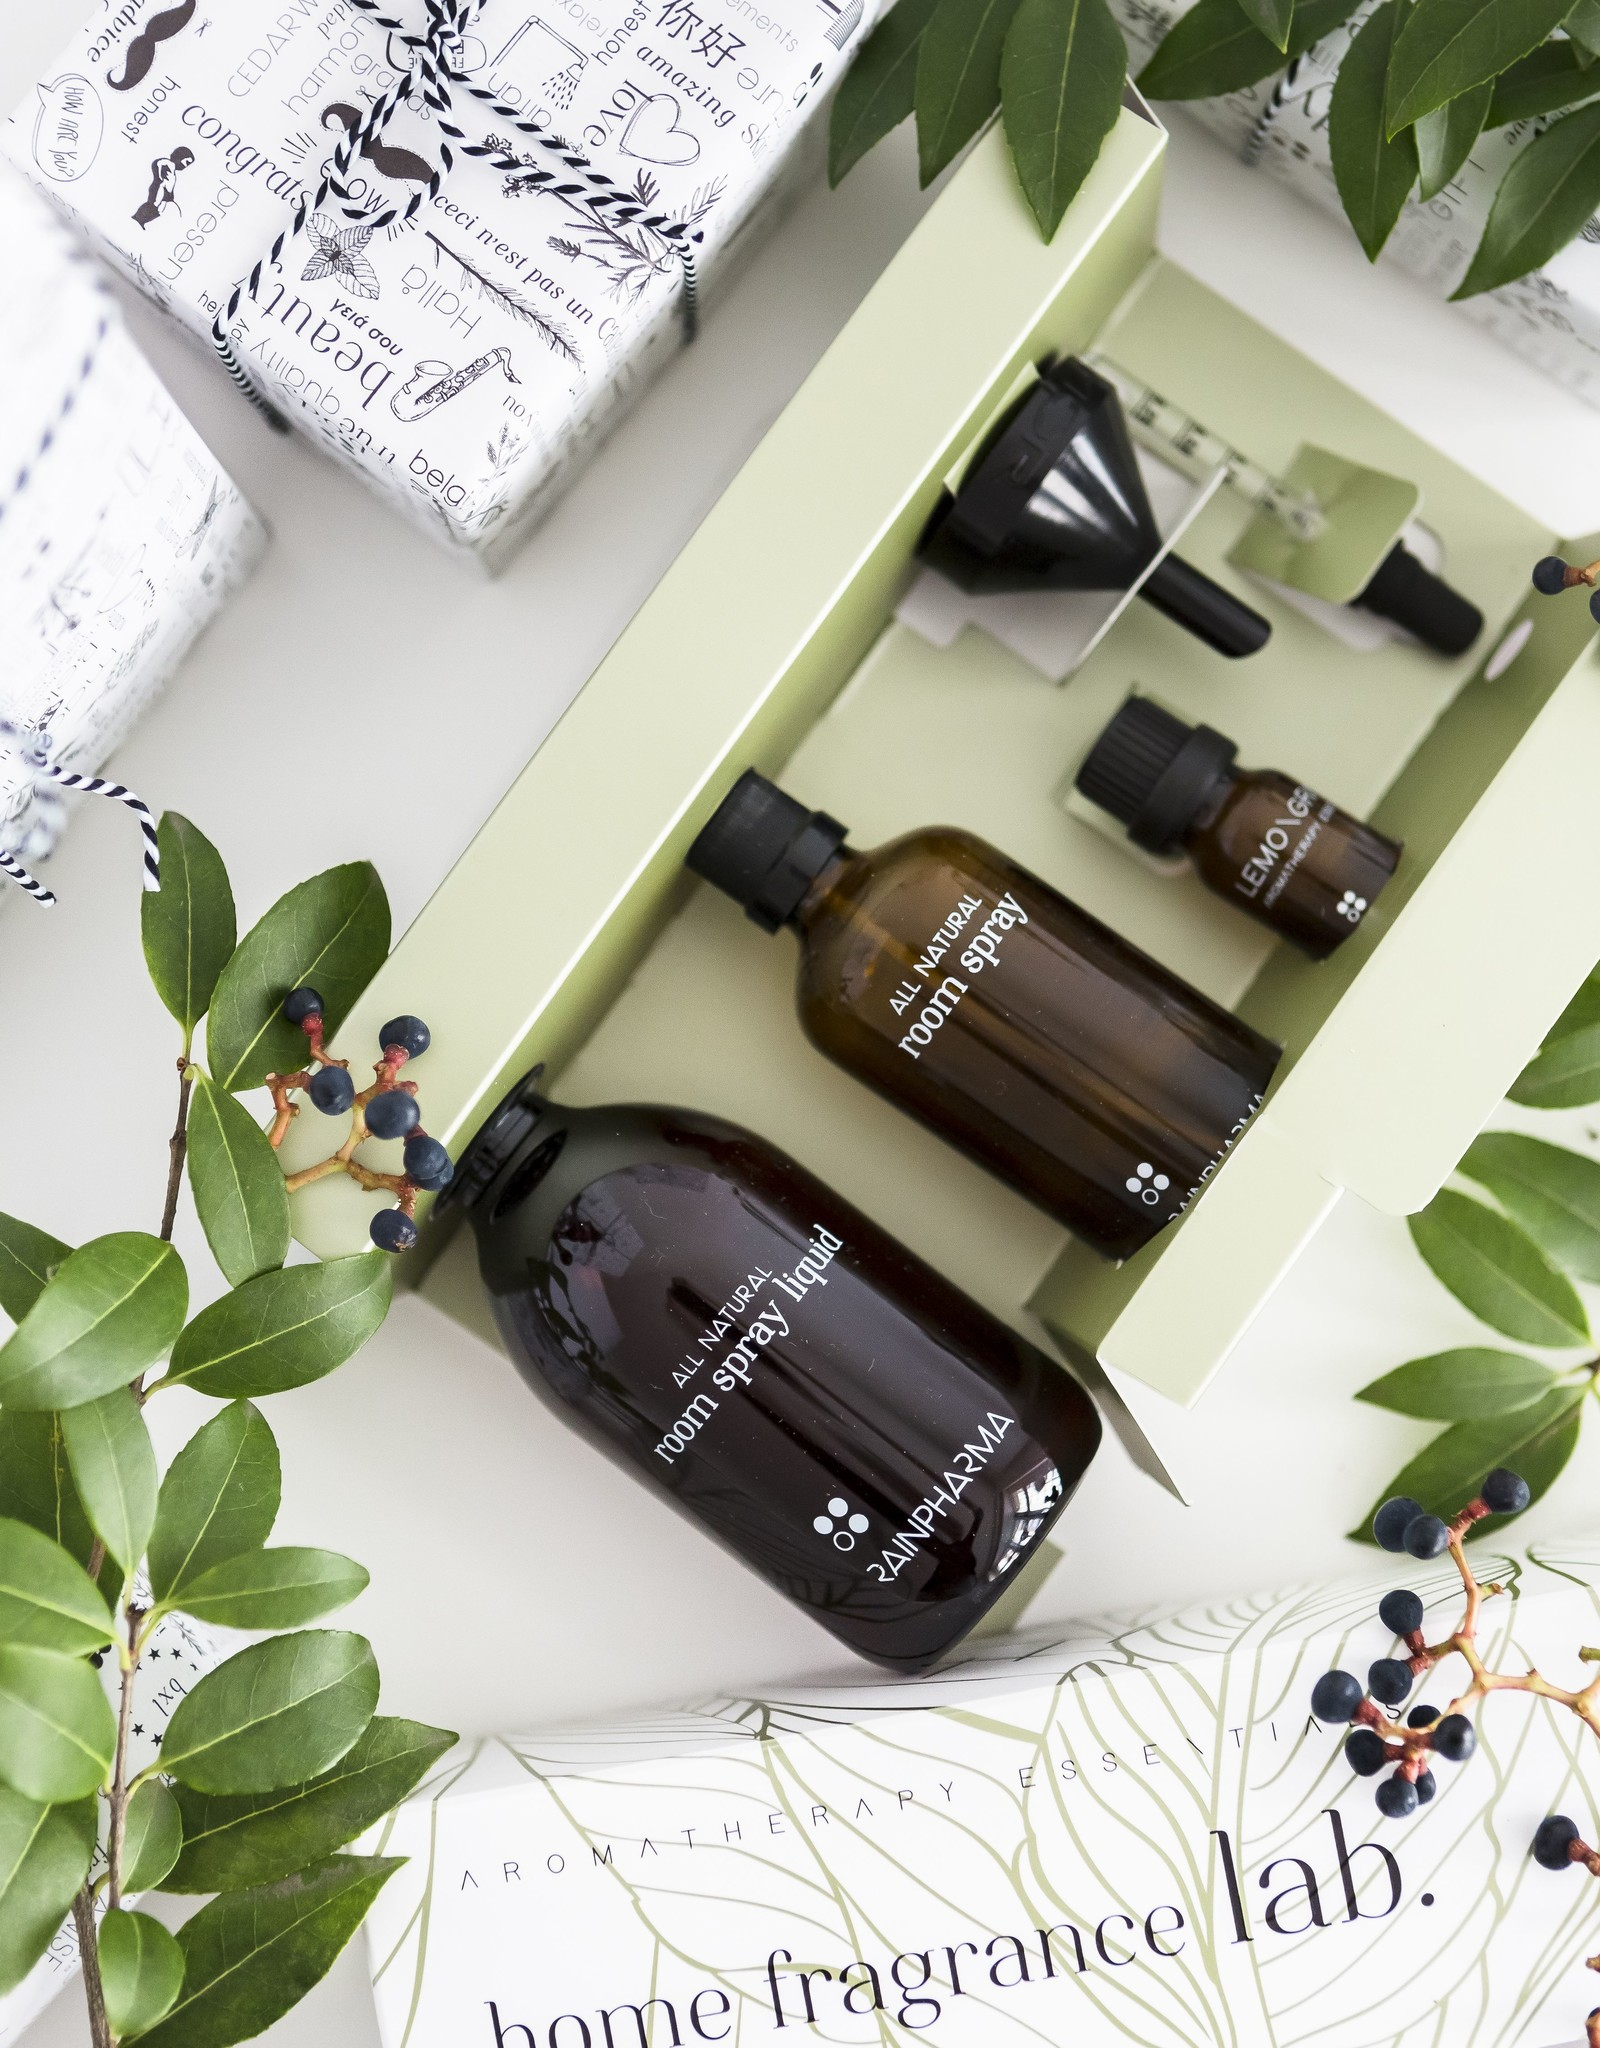 RainPharma Rainpharma - Home Fragrance Lab